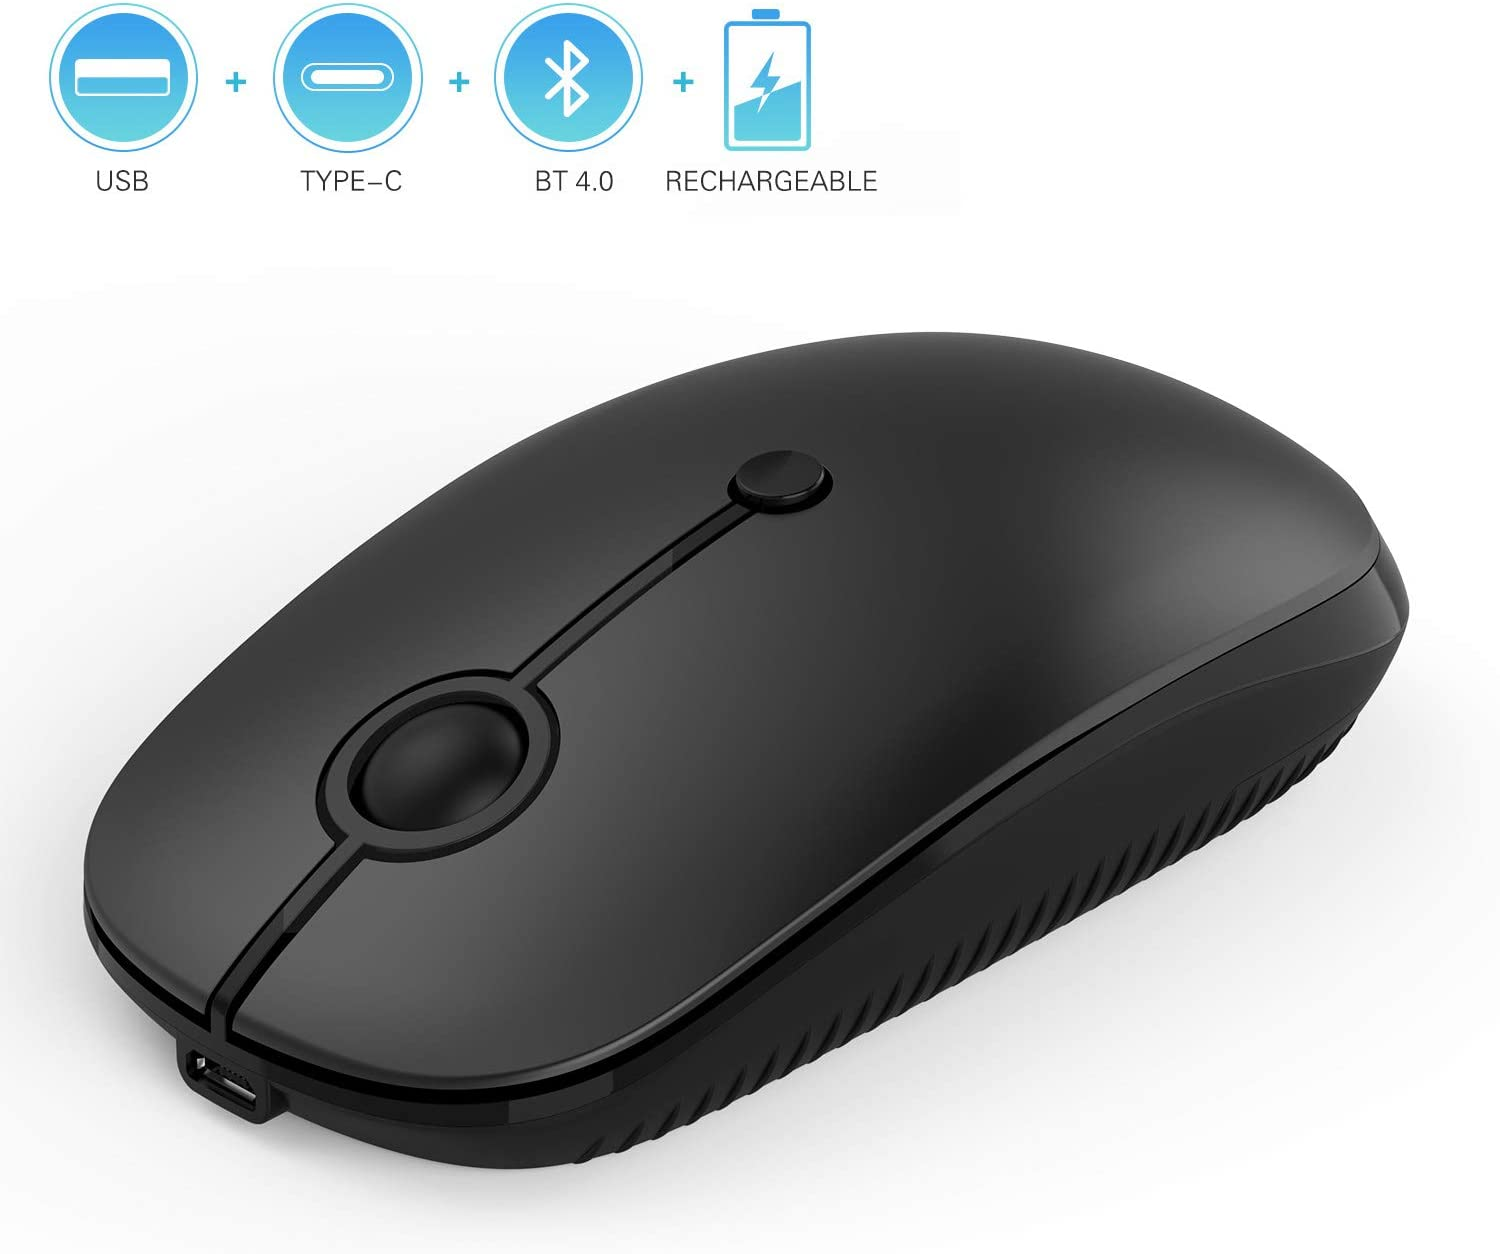 Rechargeable 2.4GHz Wireless Bluetooth Mouse, Jelly Comb